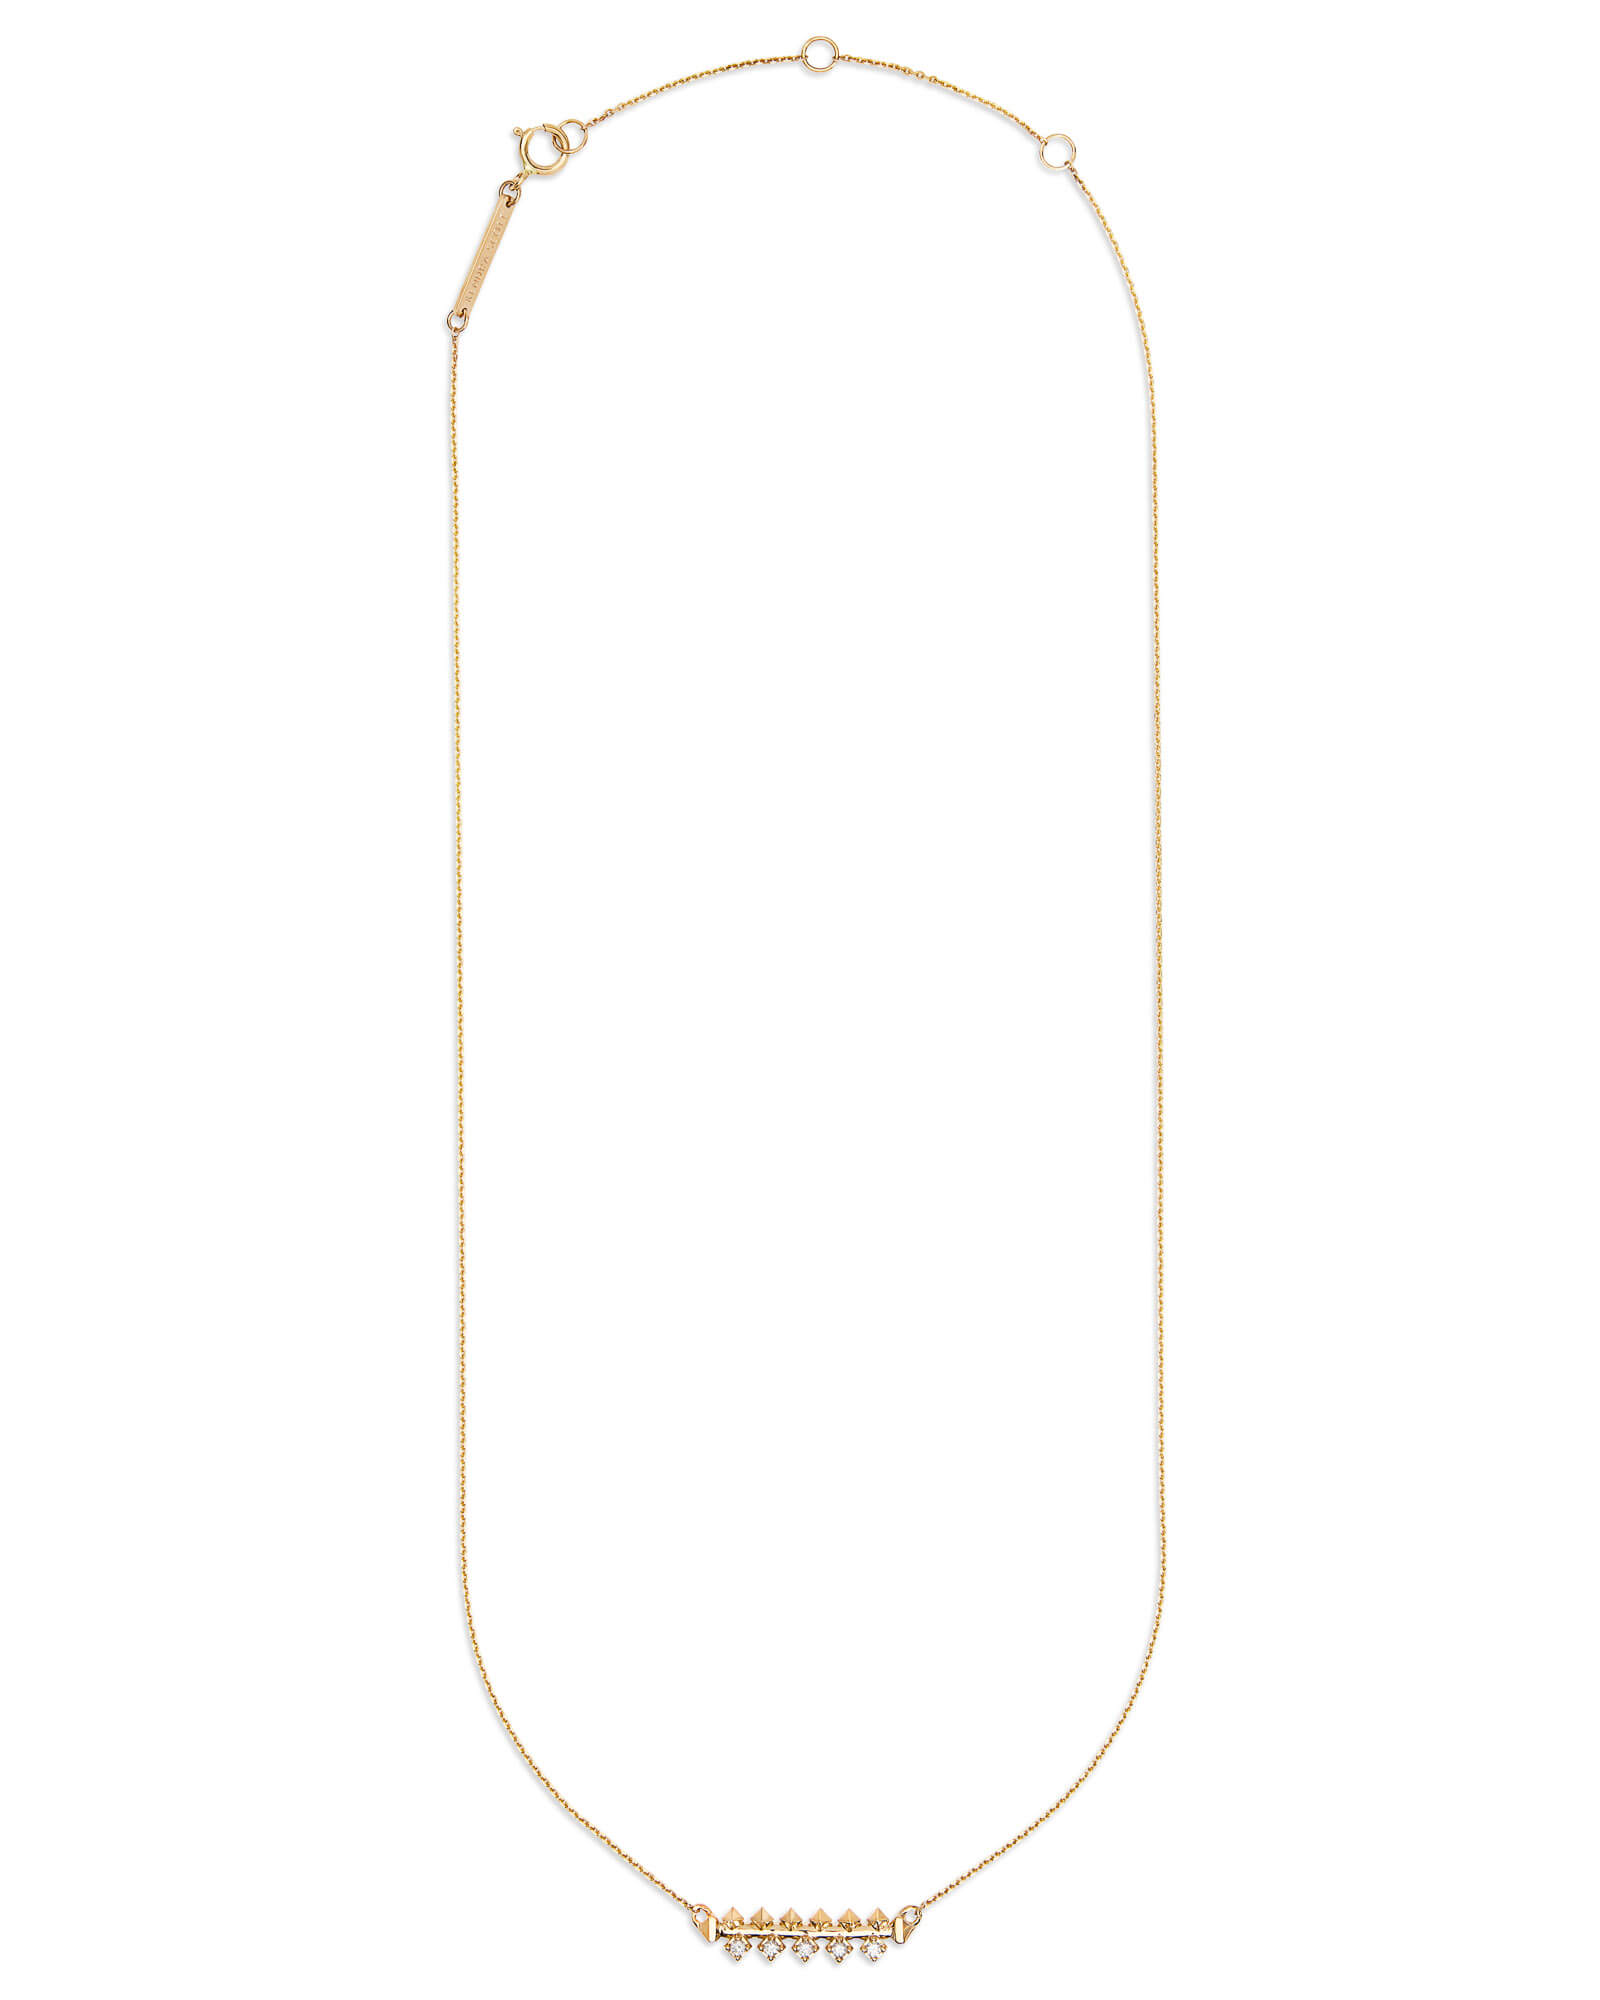 Silas 14k Yellow Gold Necklace in White Diamond